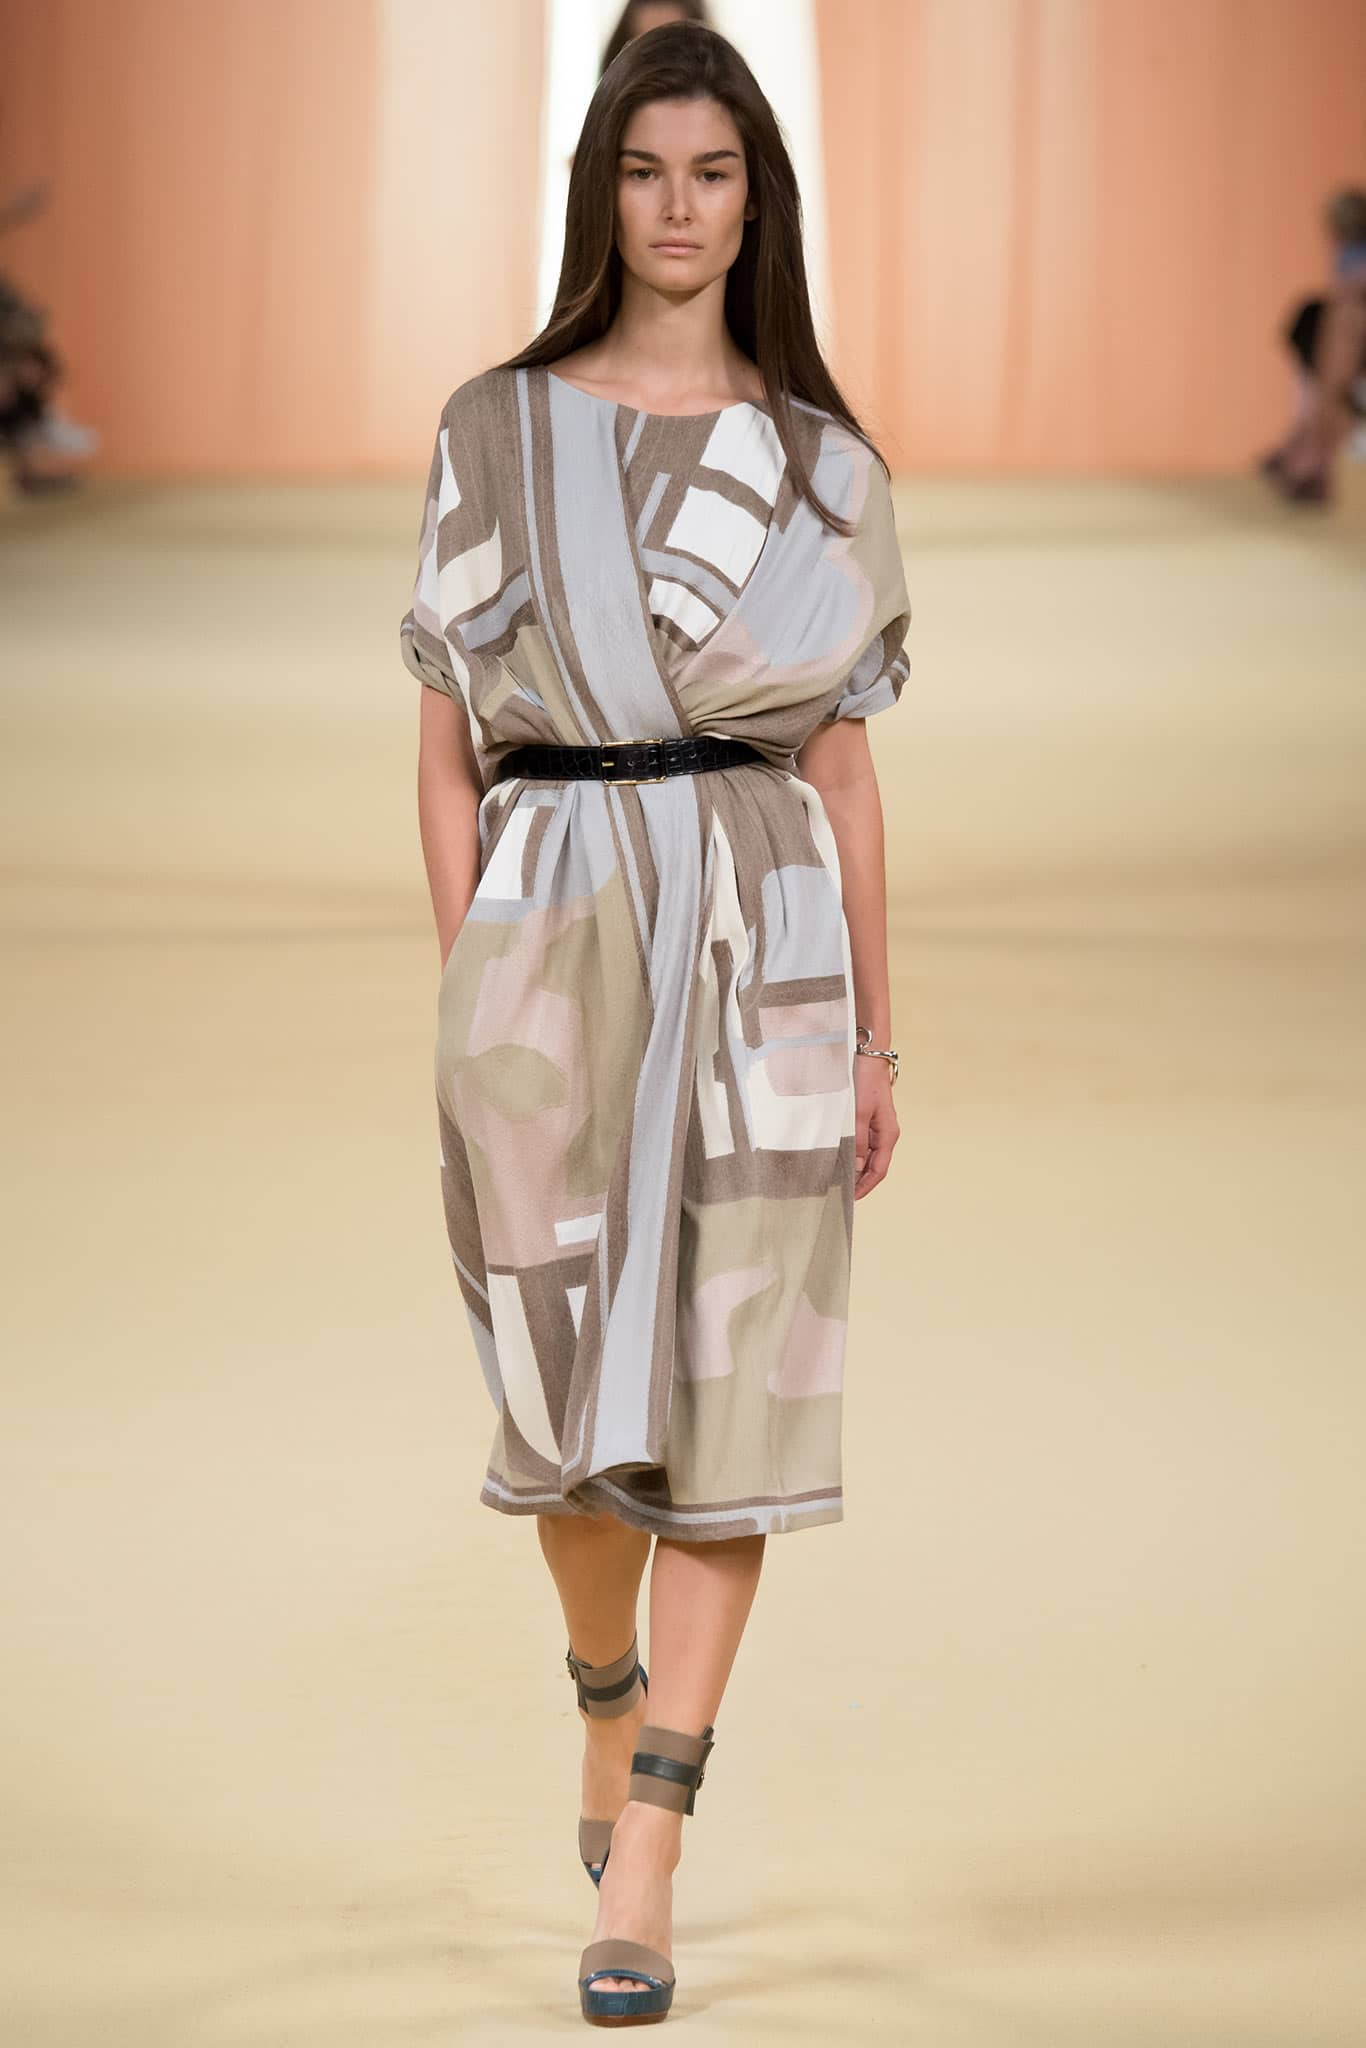 Hermes Spring Summer 2015 Runway Bag Collection